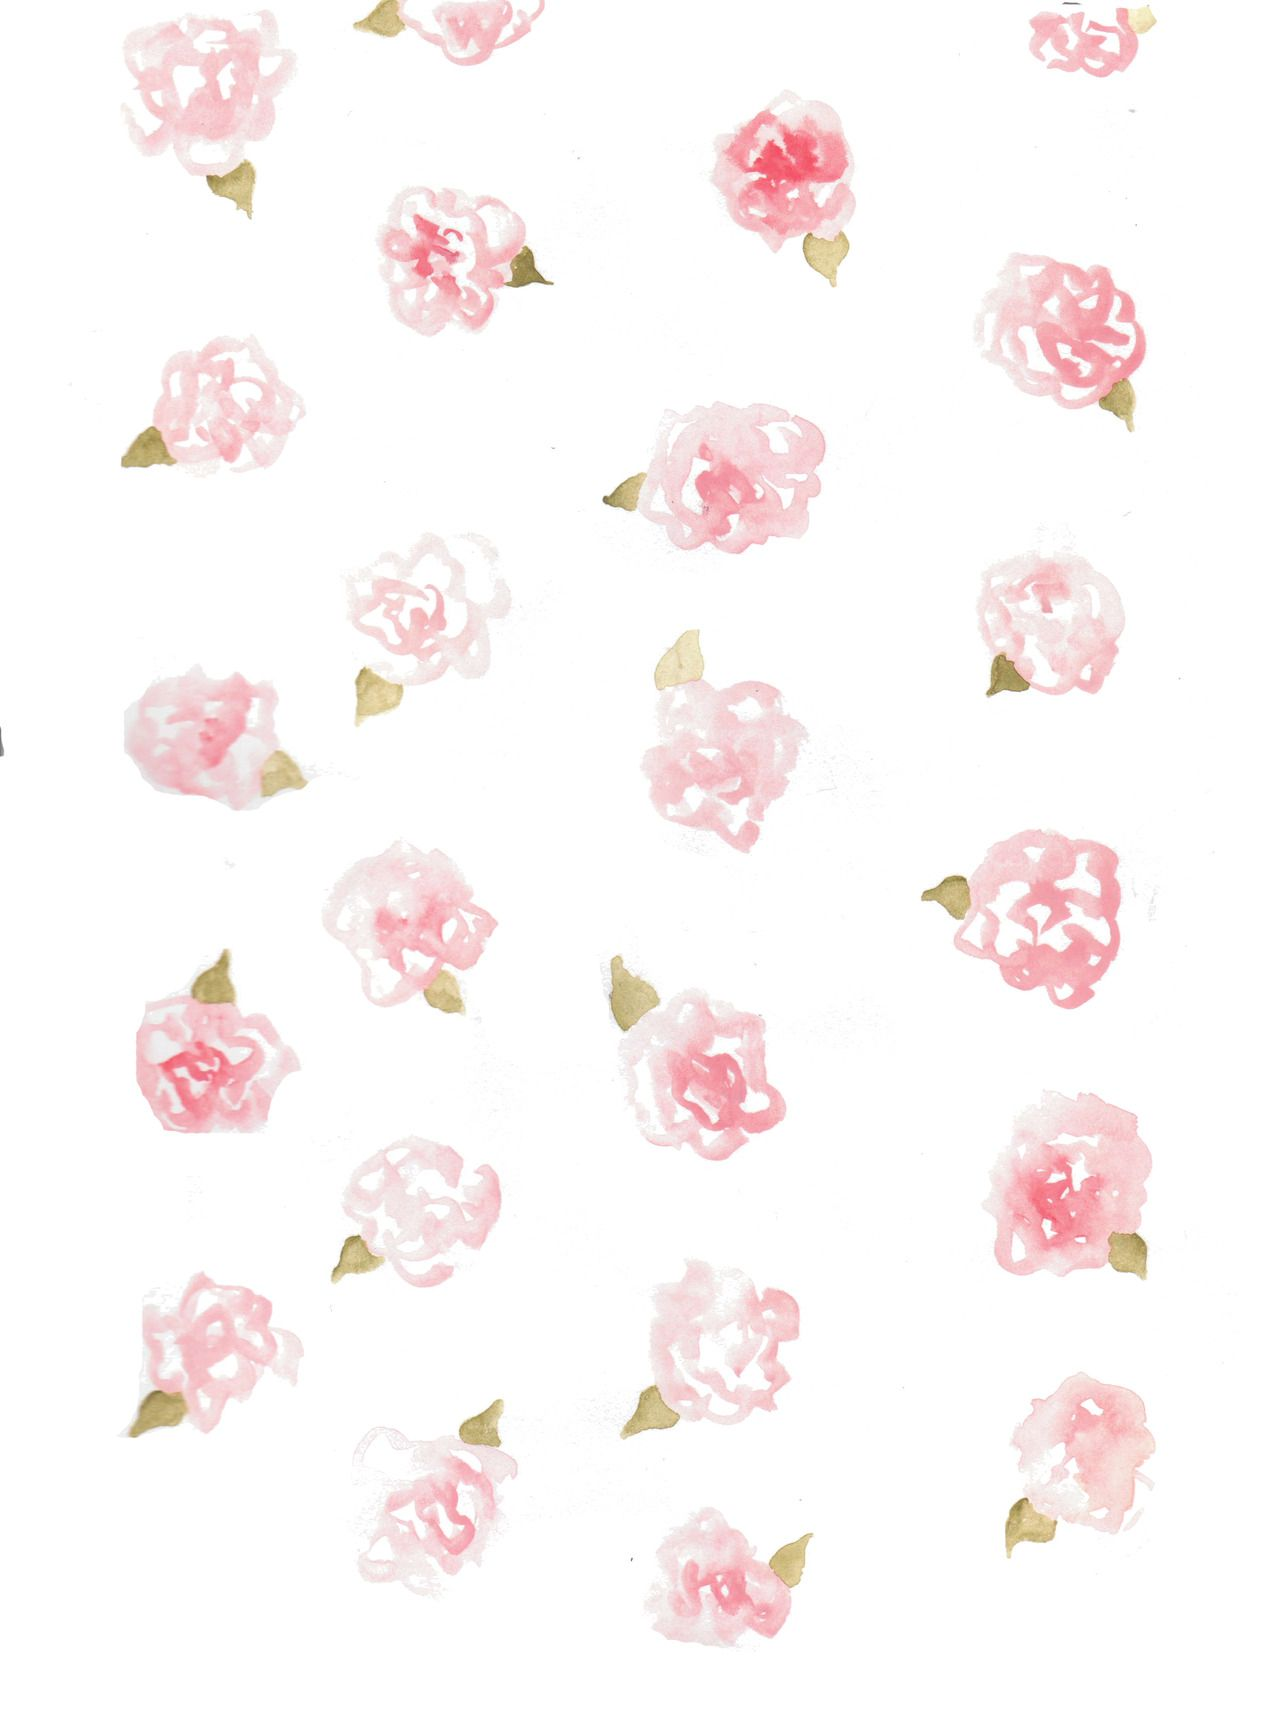 Art painting flowers watercolor color floral print for Pretty designs to paint